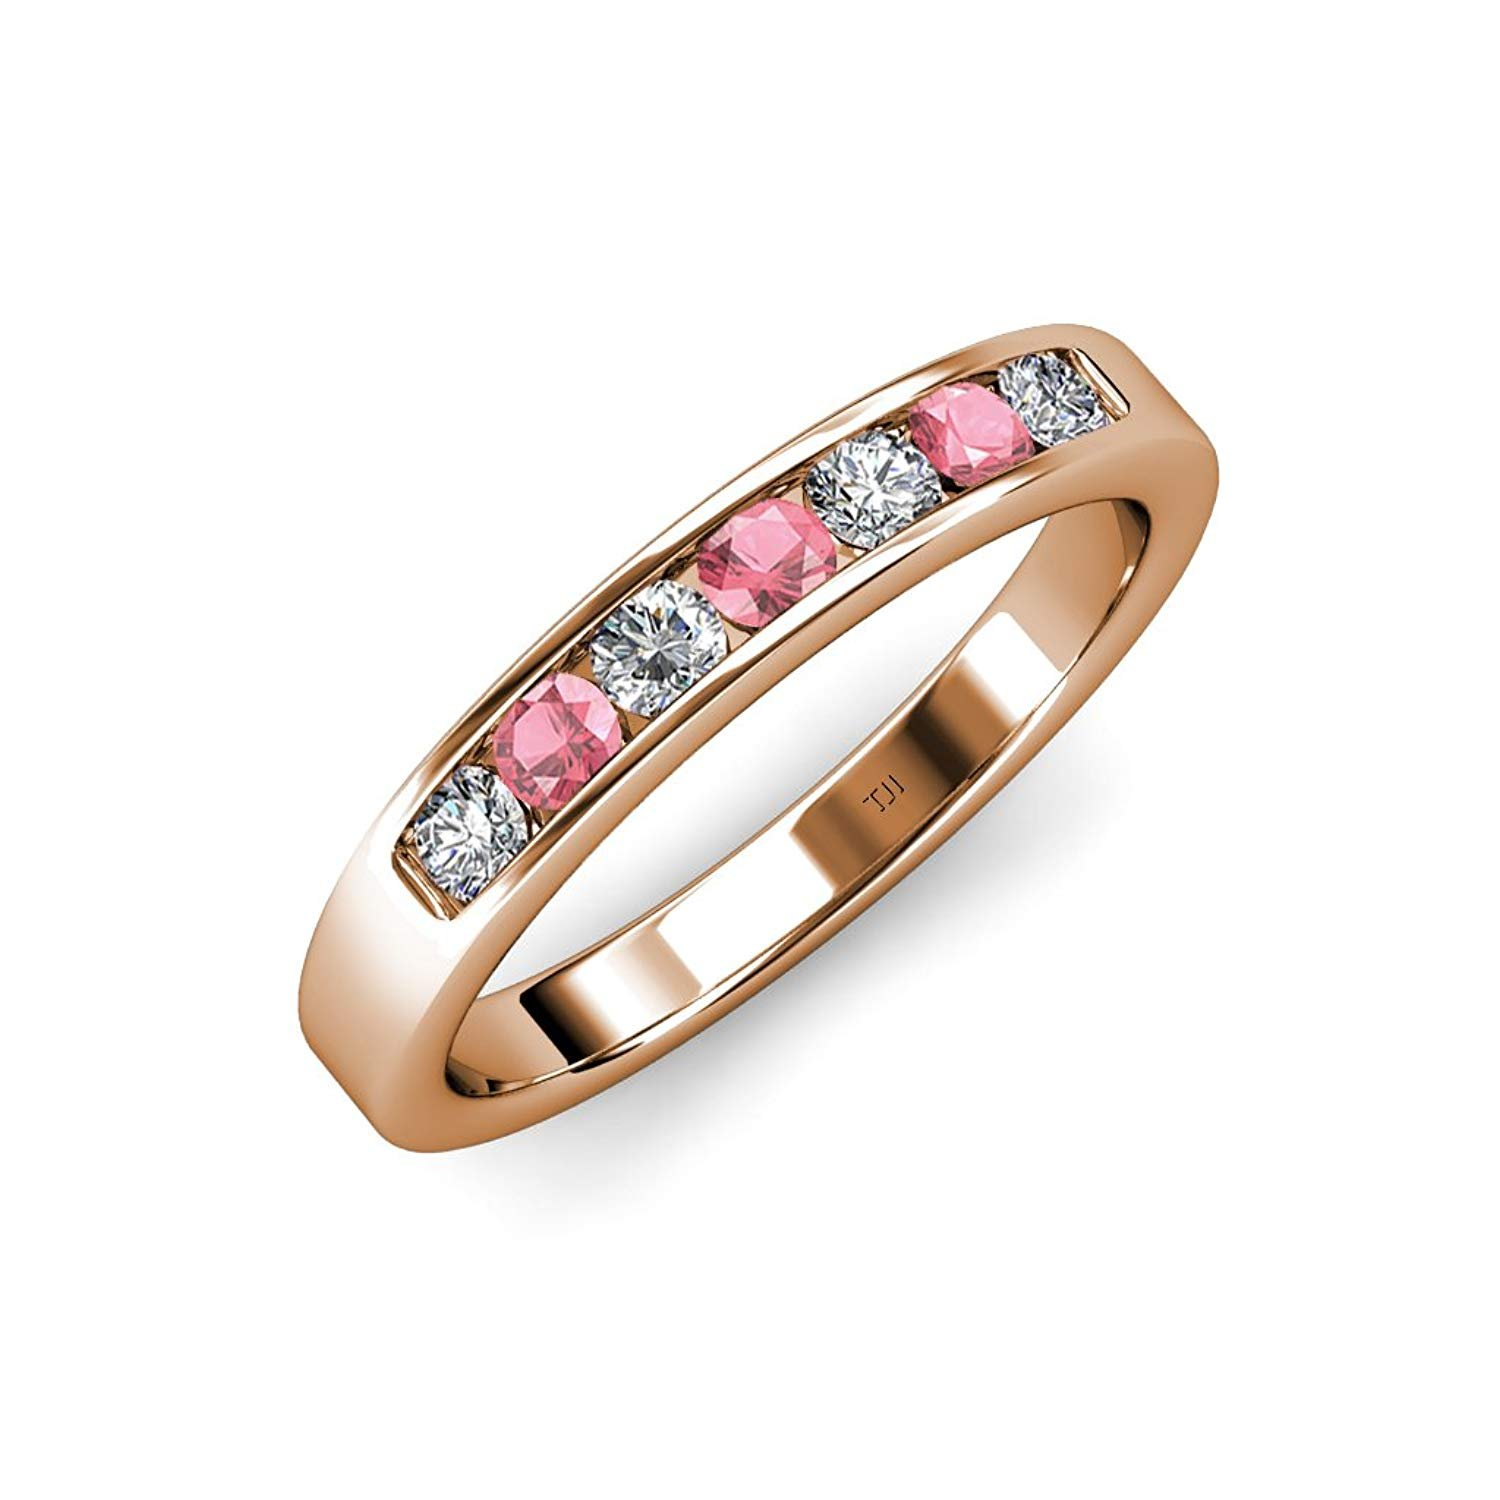 Pink Tourmaline and Diamond�7 Stone Channel Set Wedding Band 0.71 ct tw in 14K Rose Gold.size 7.5 by TriJewels